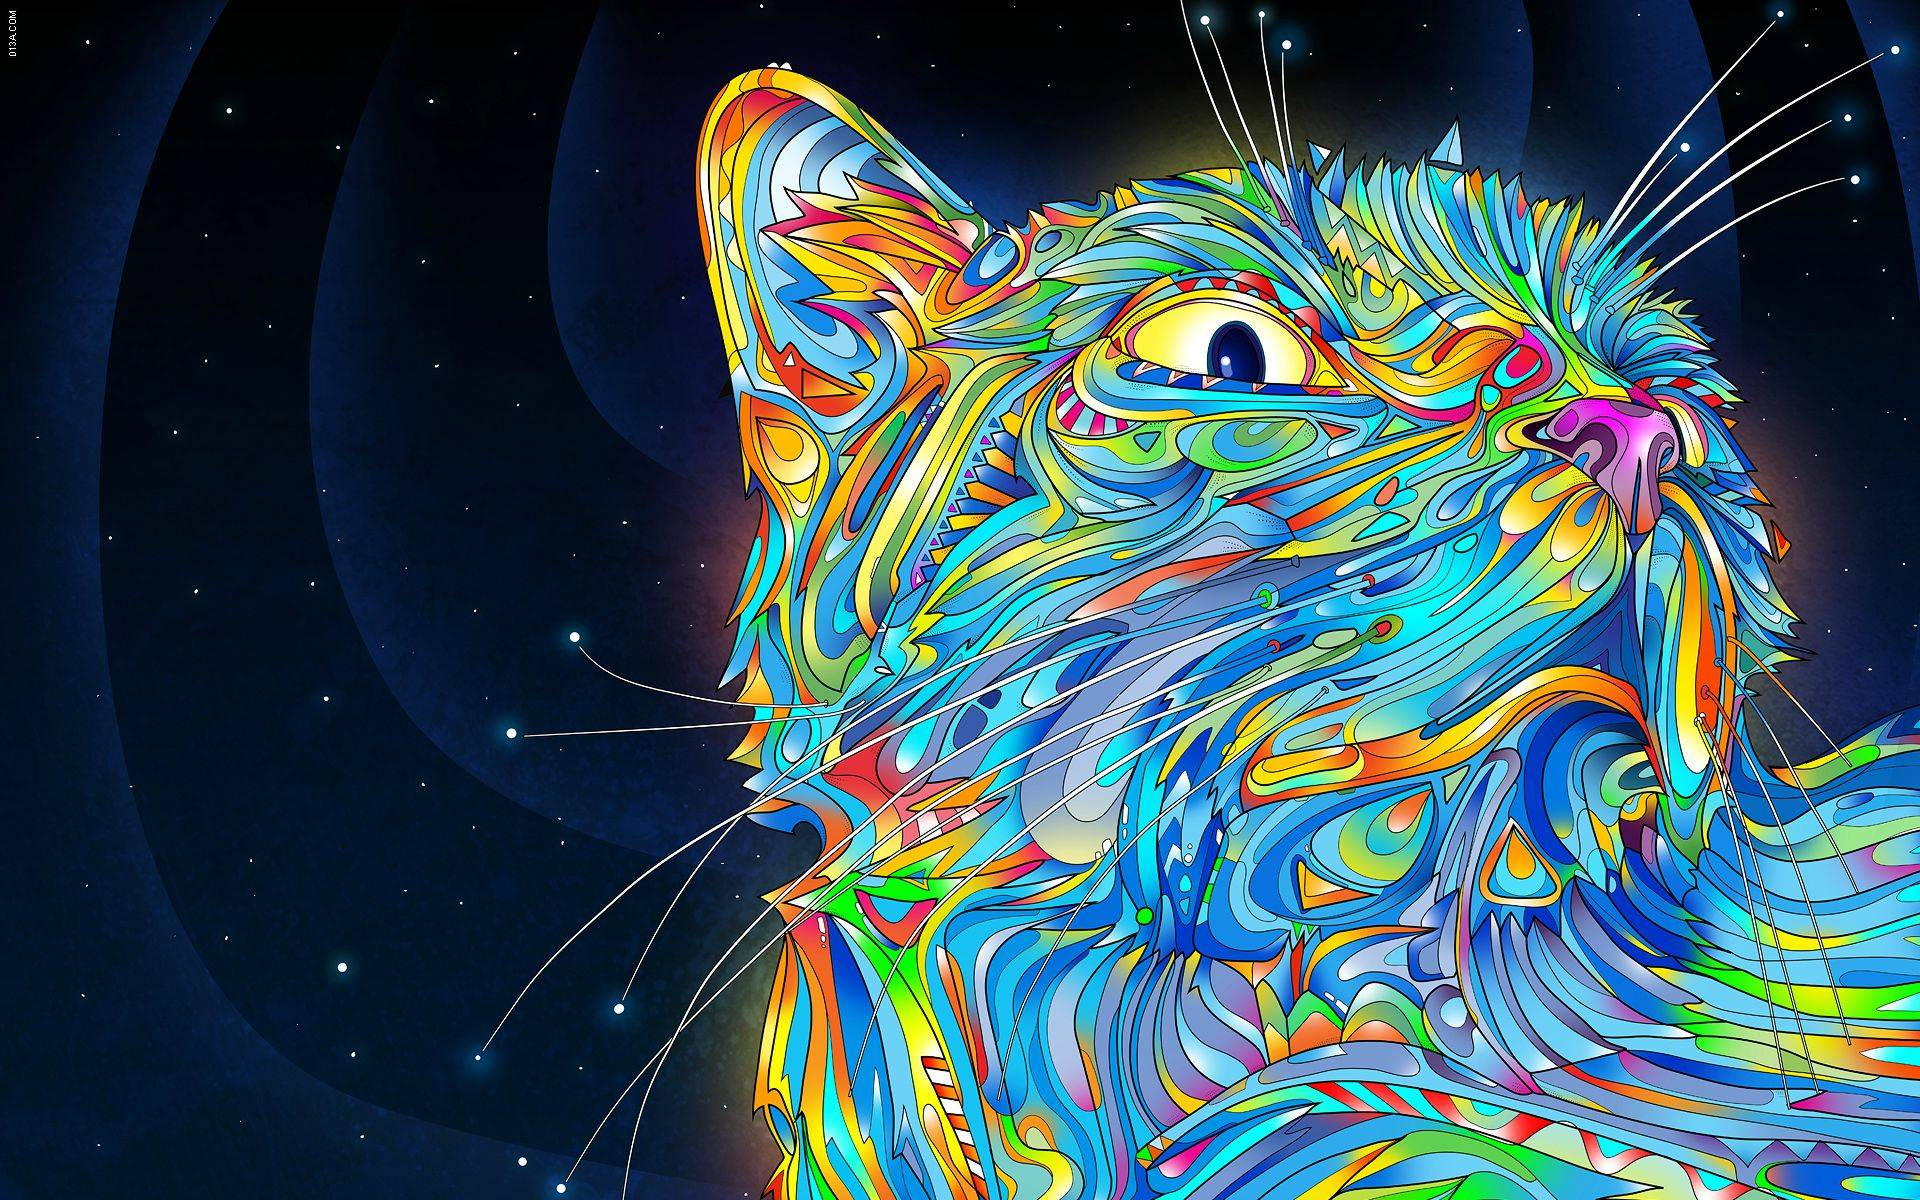 Trippy wallpaper HD – An Easy Way to Pick Images For Your Computer's Wallpaper